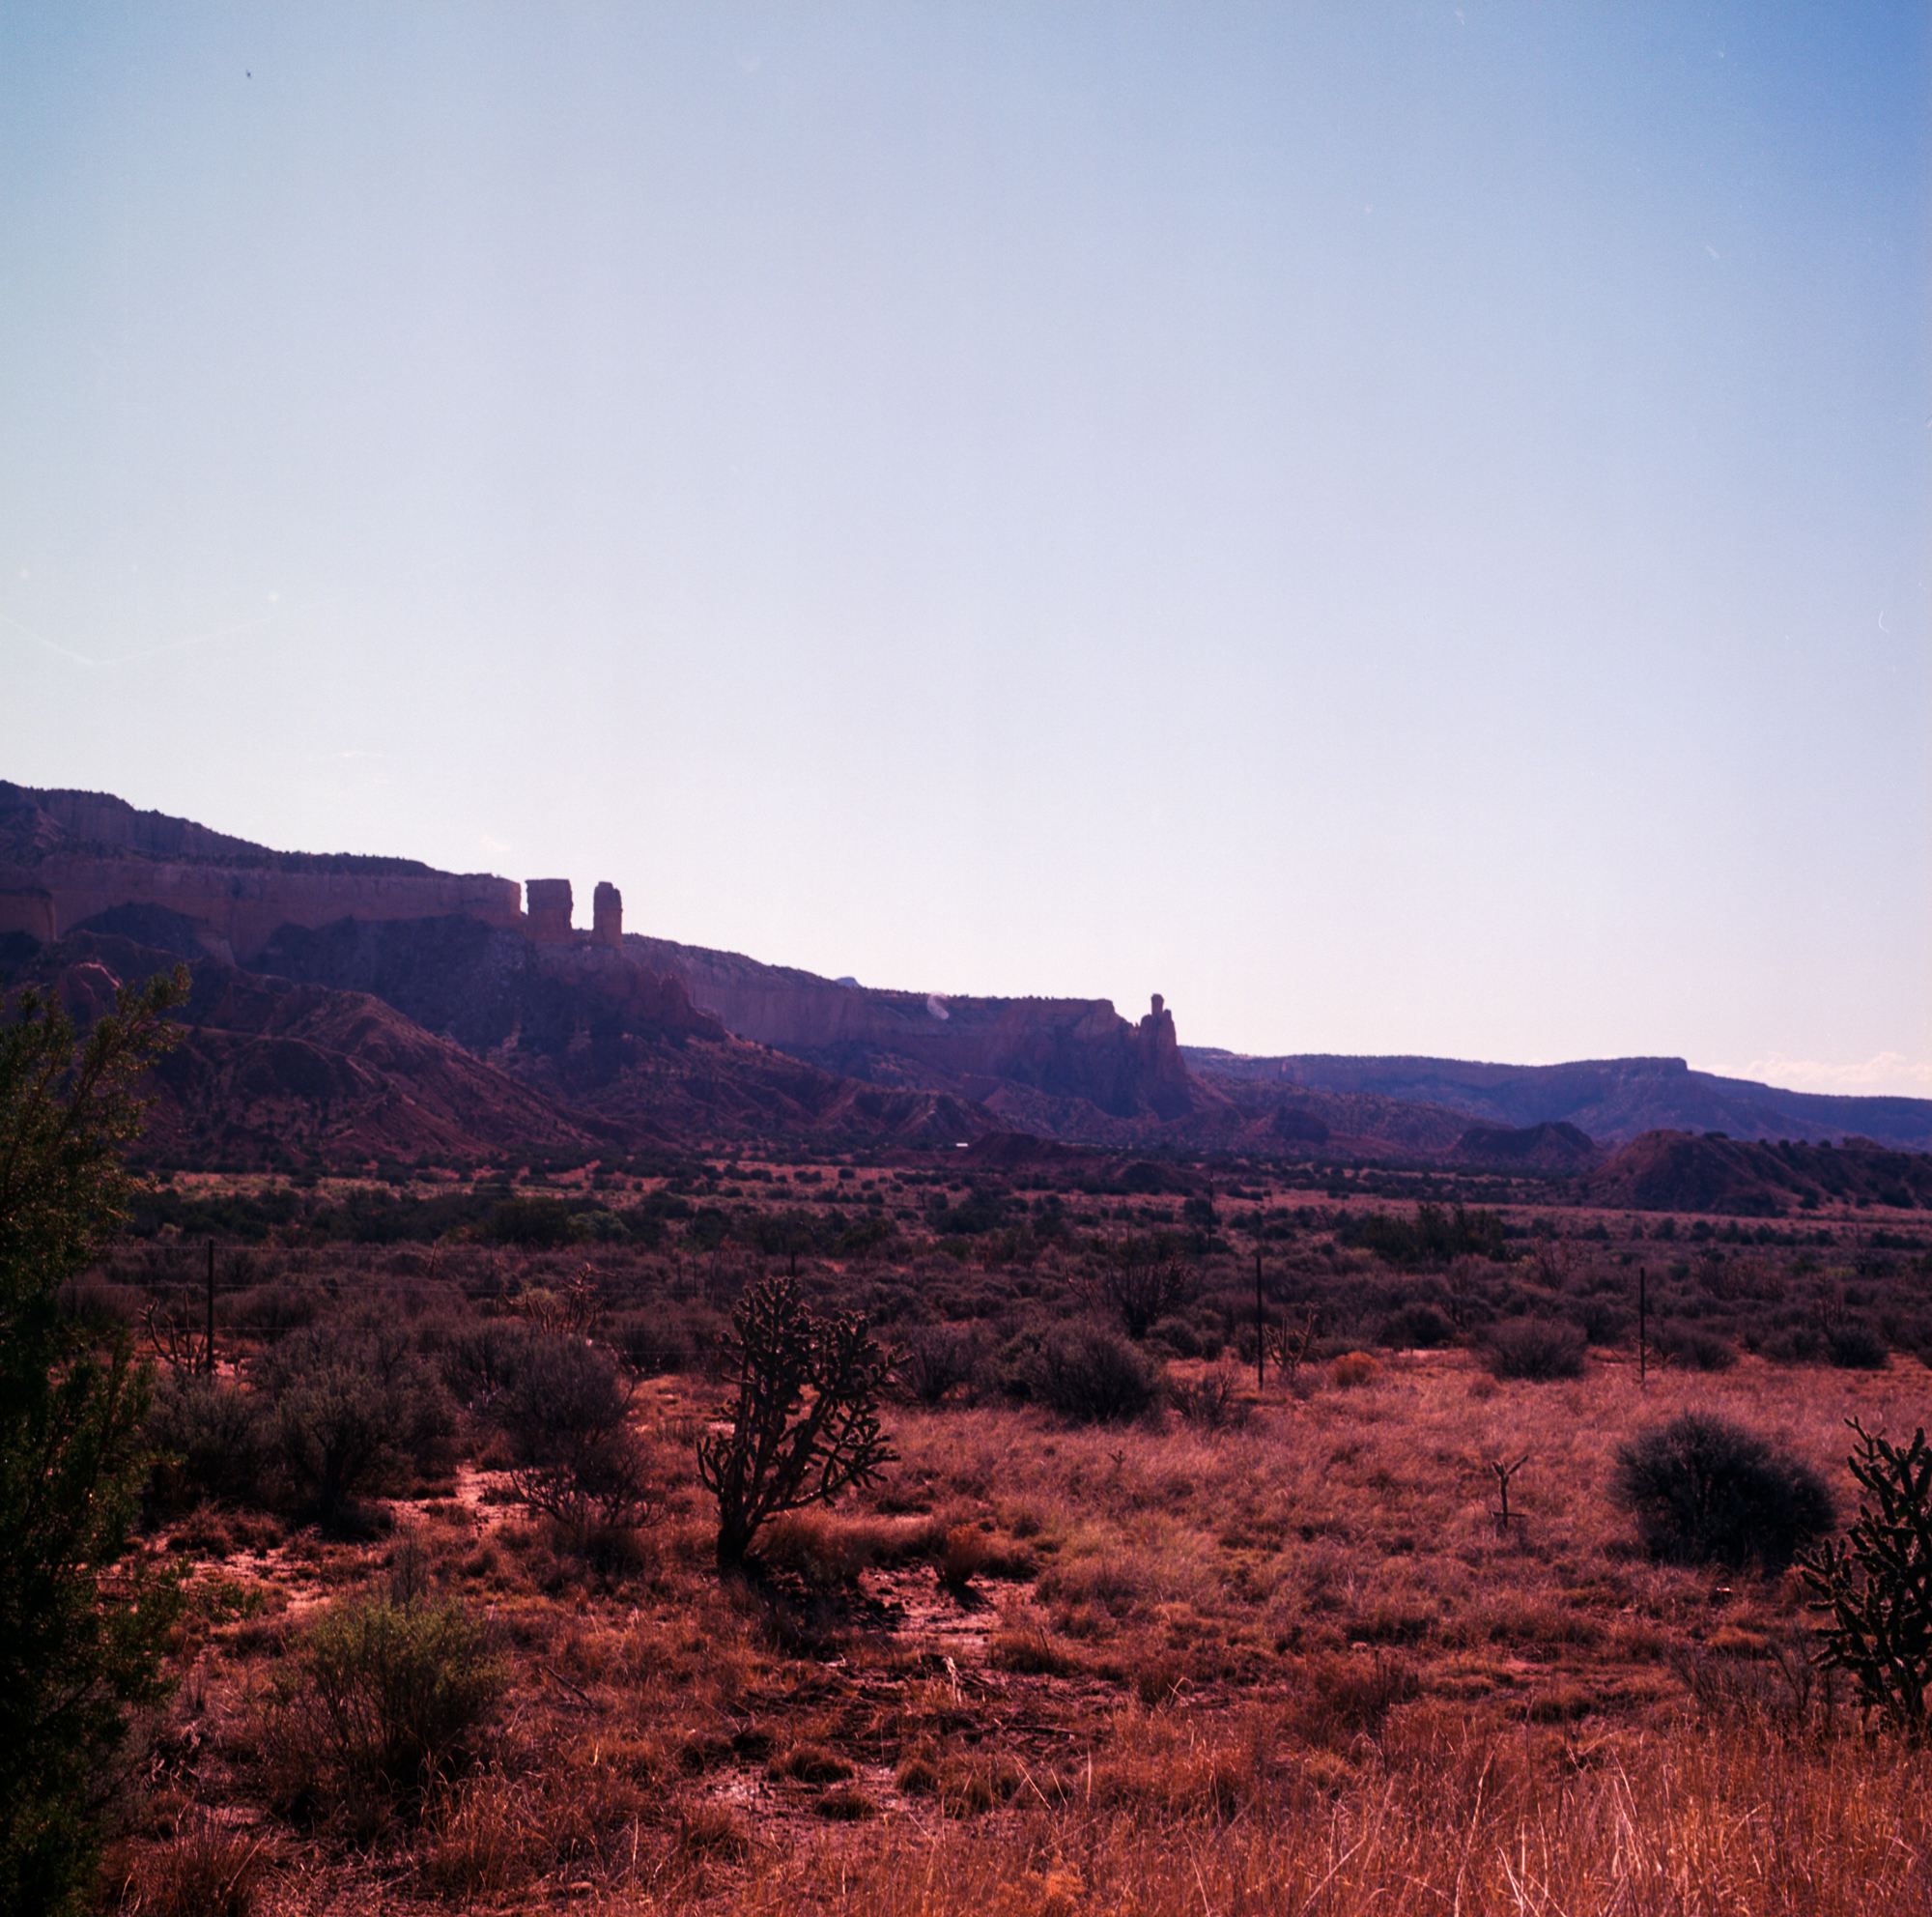 Ghost Ranch ektar 120 2018 (12 of 12).jpg